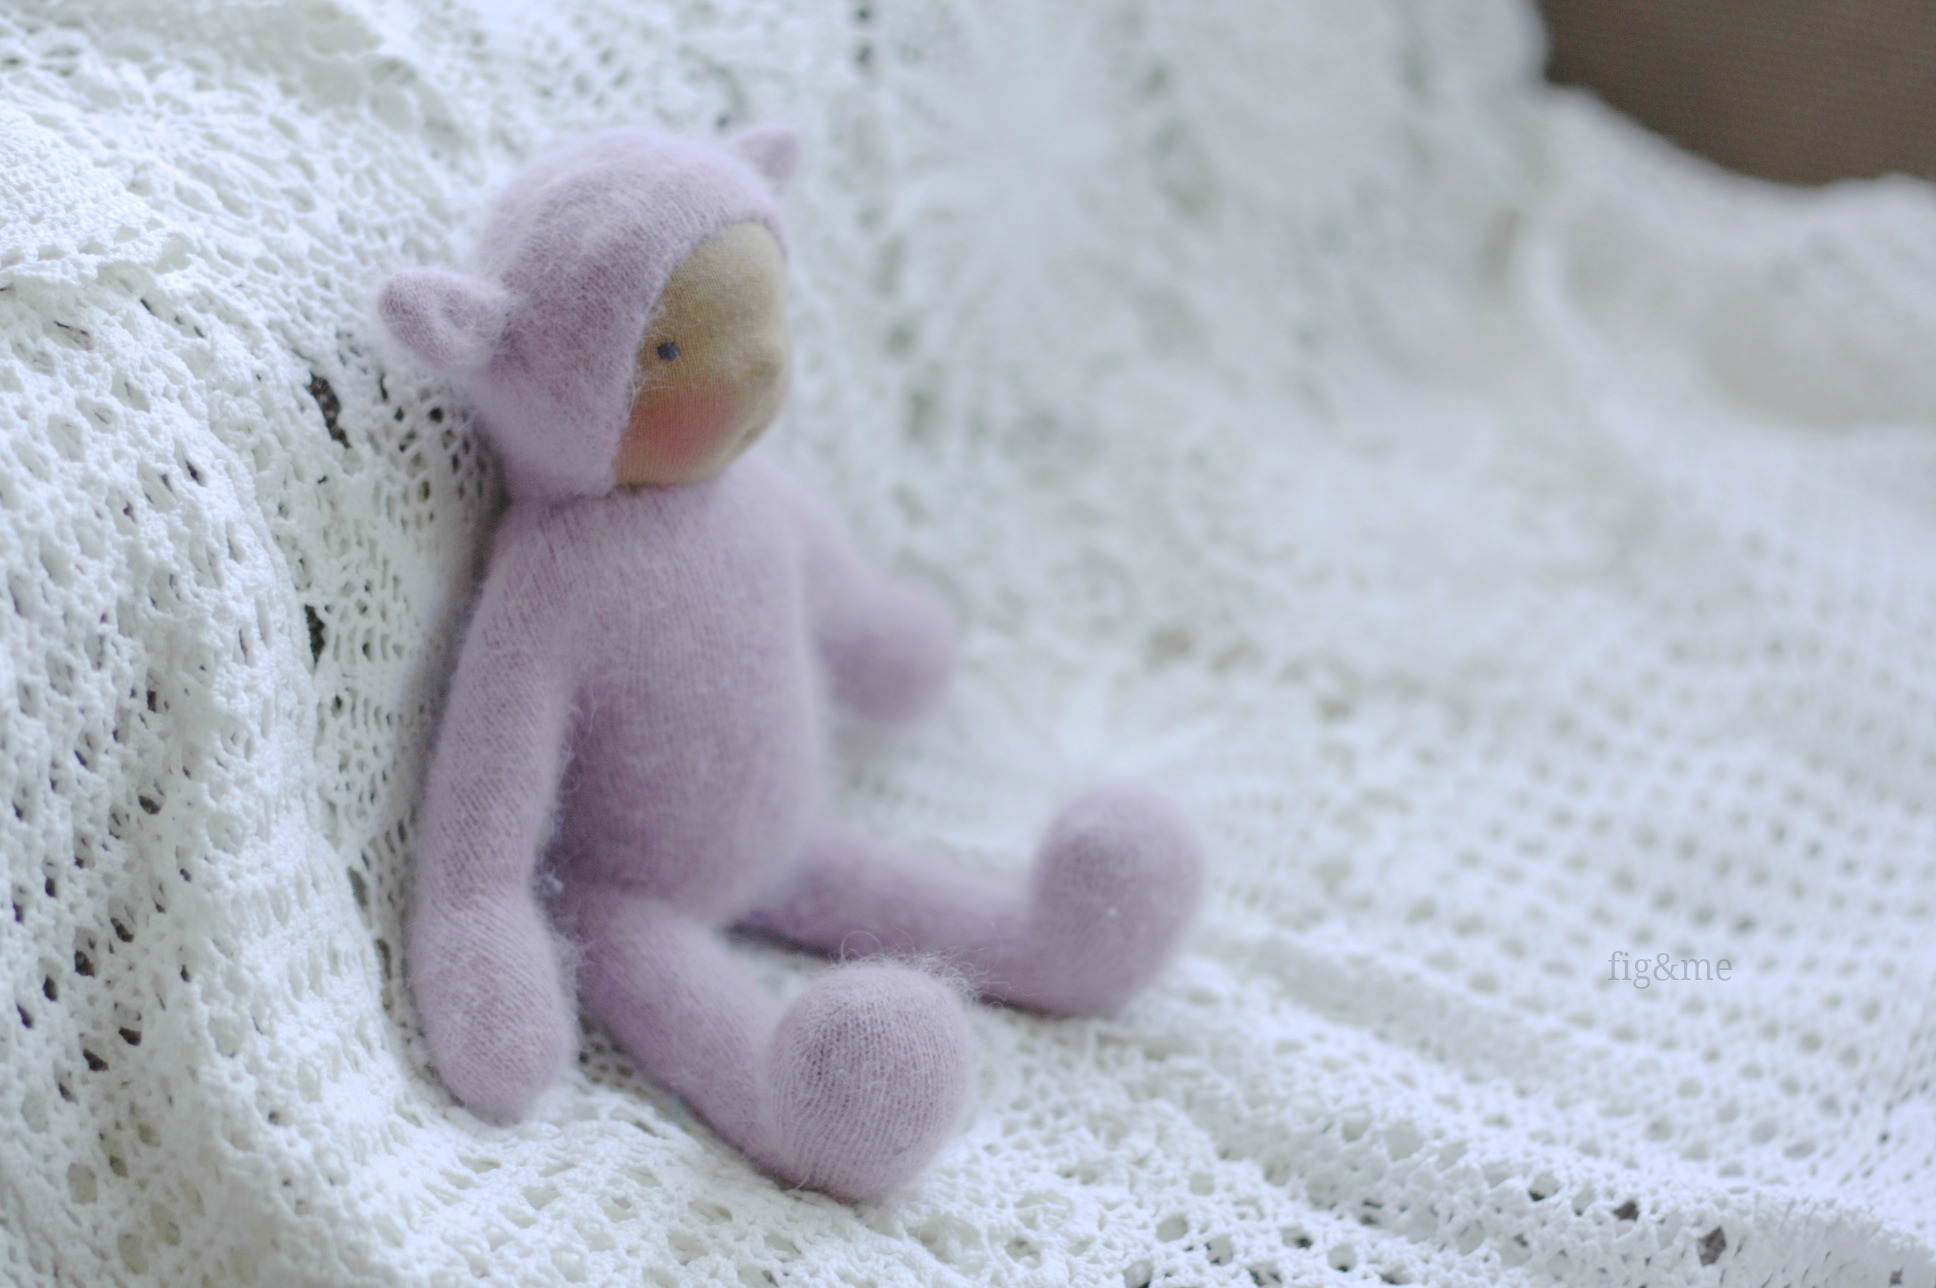 An angora Wee Baby, by Fig&me